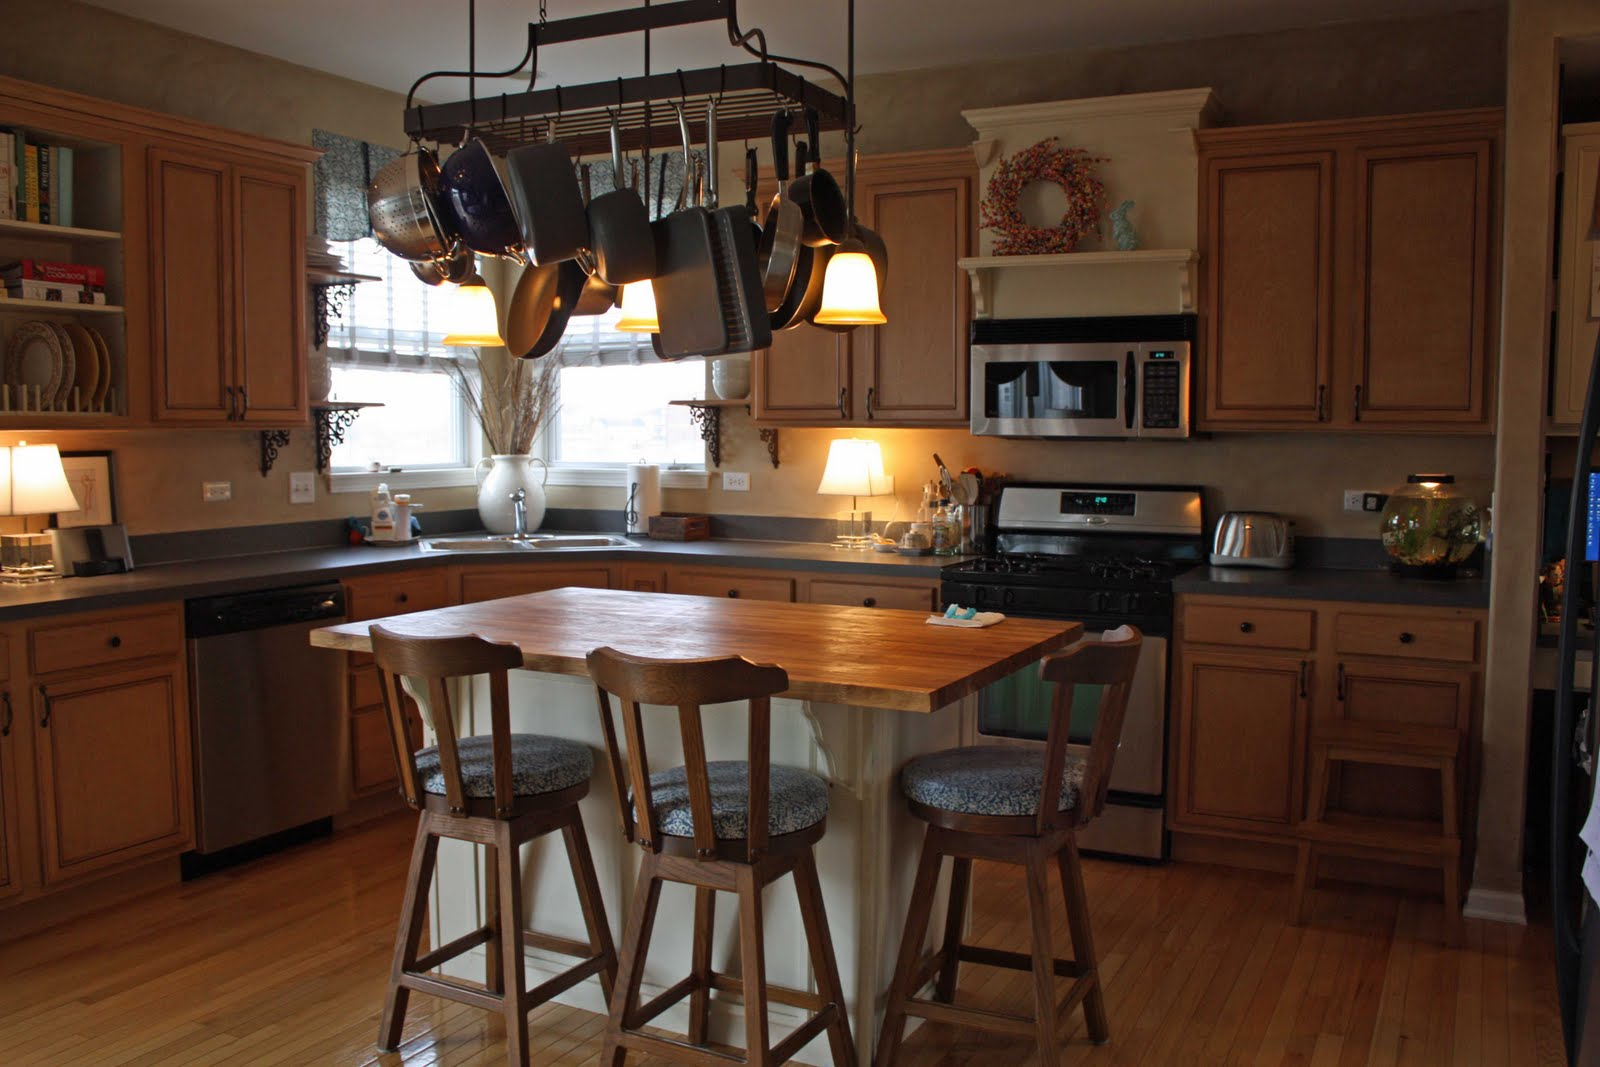 Transforming Home....: How To Add Crown Molding To Kitchen